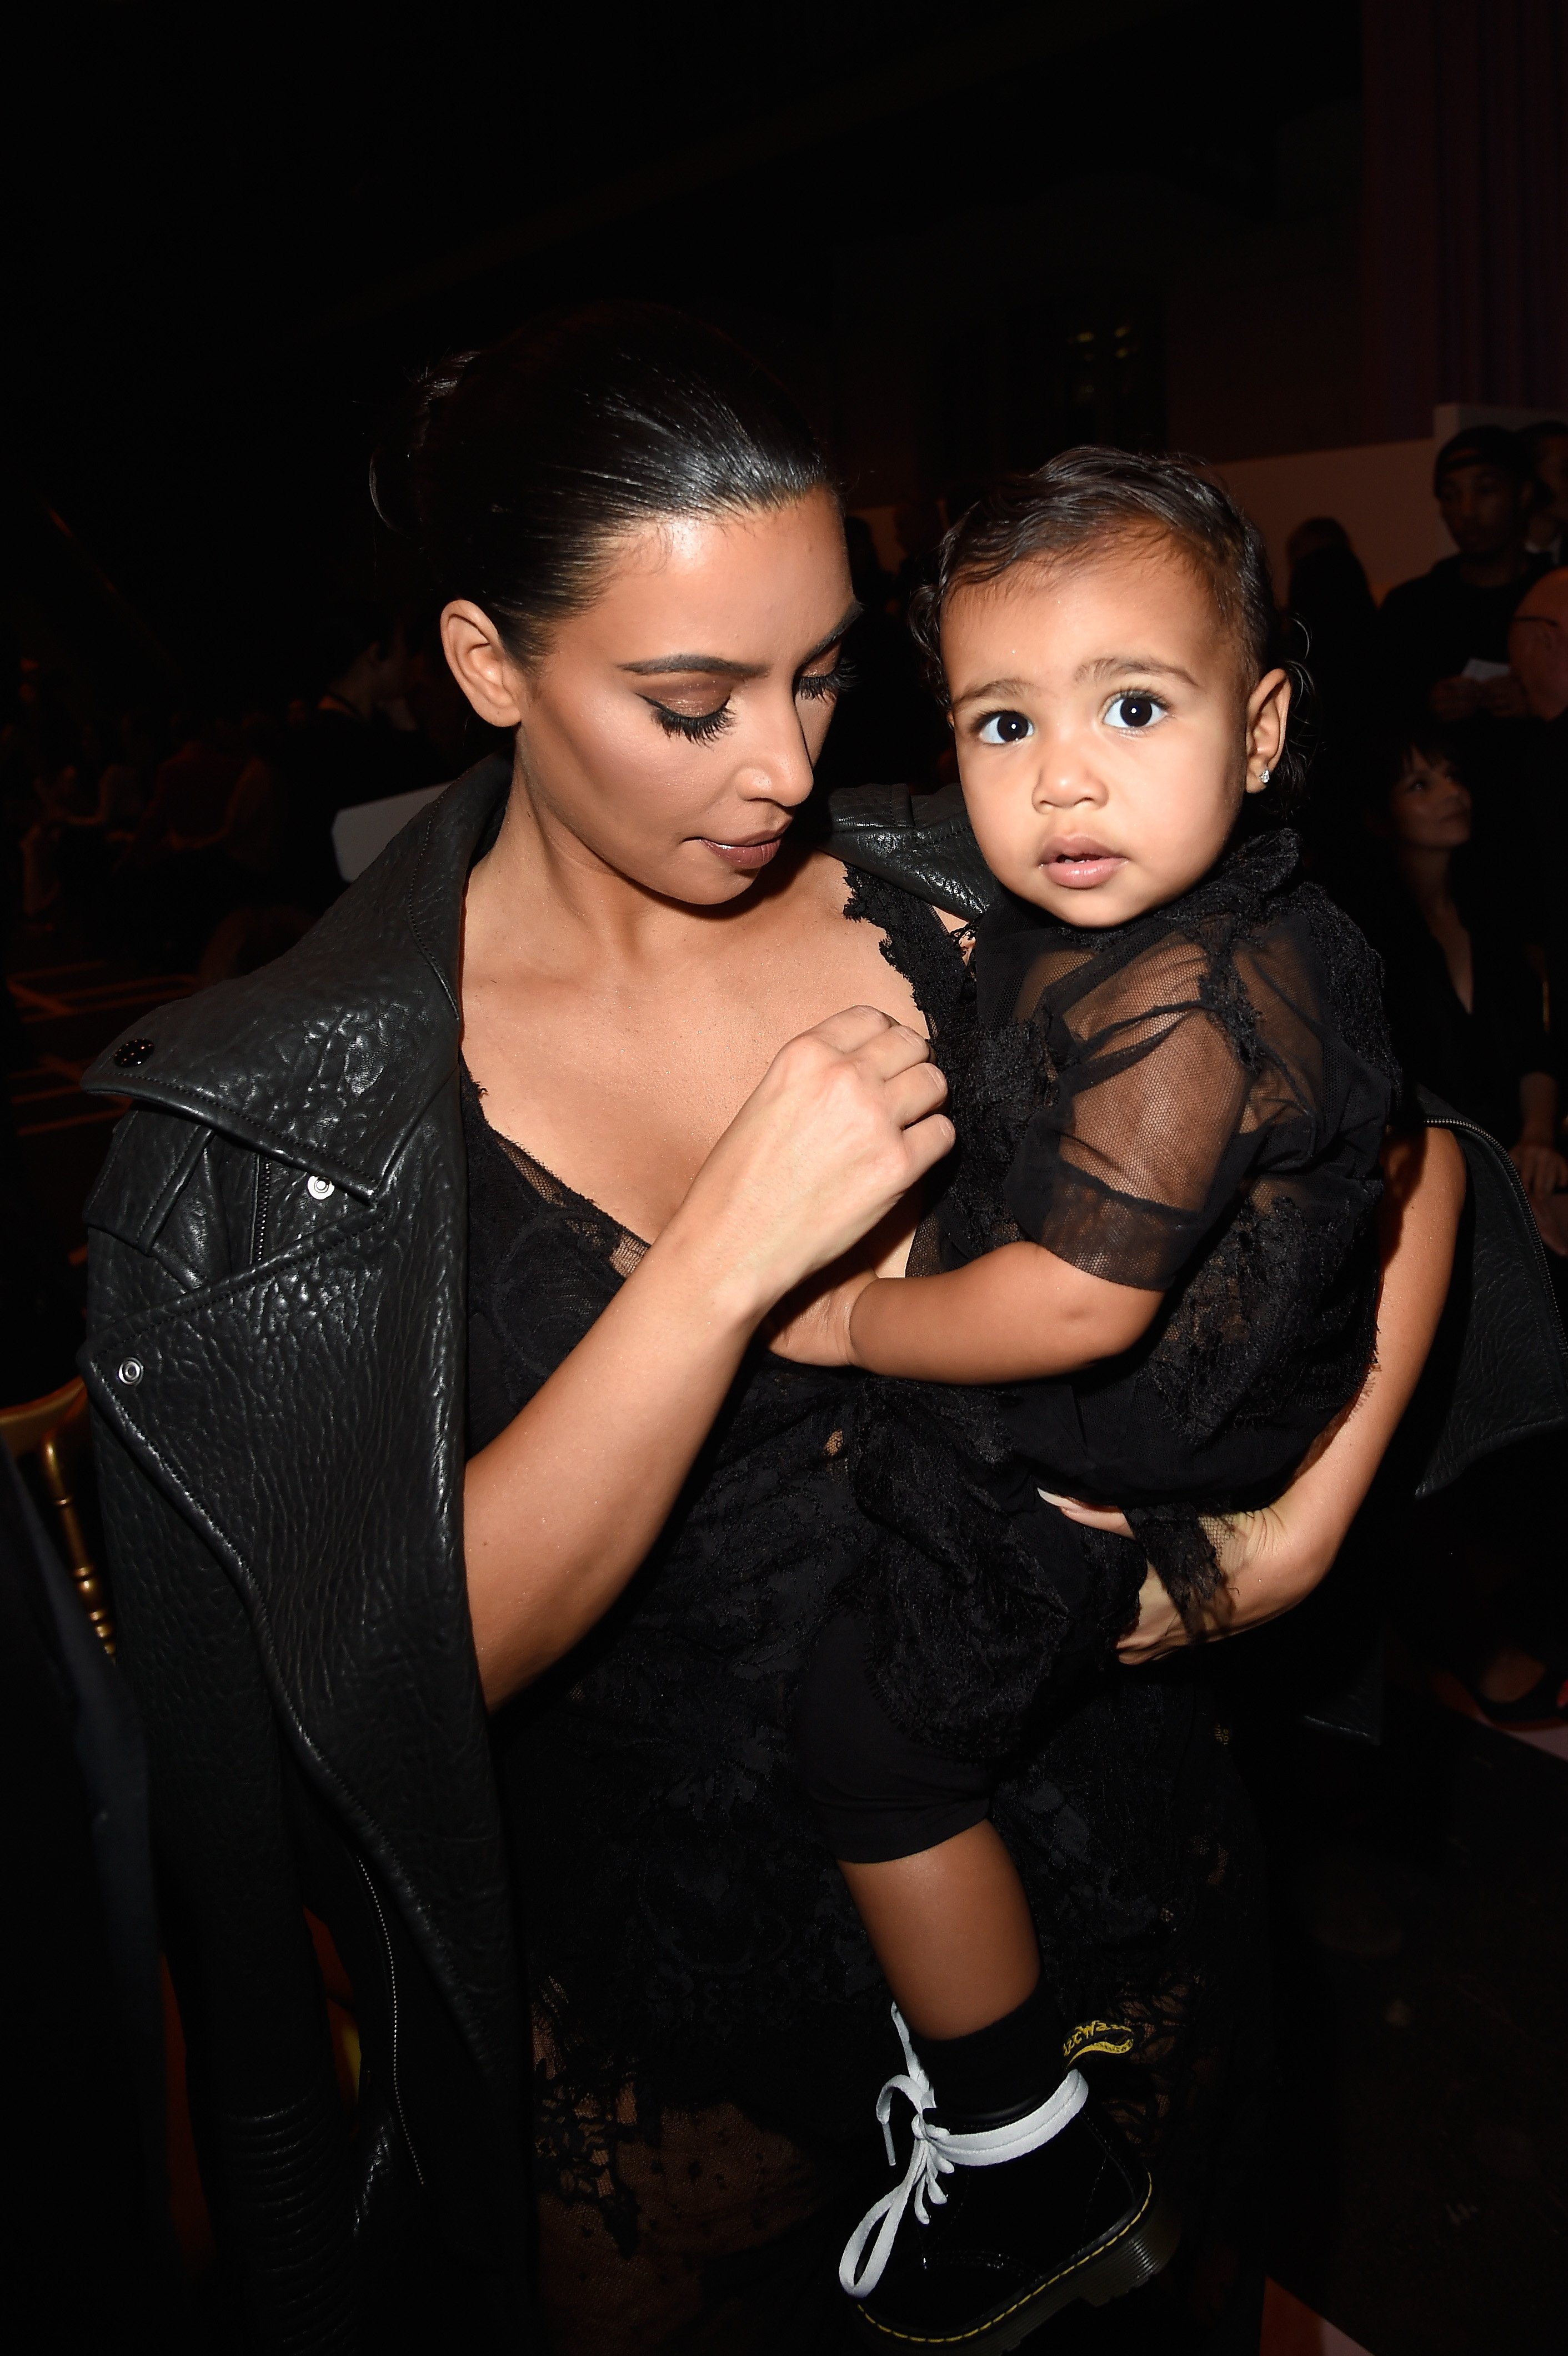 Kim Kardashian and baby North West at the Givenchy show as part of the Paris Fashion Week | Source: Getty Images